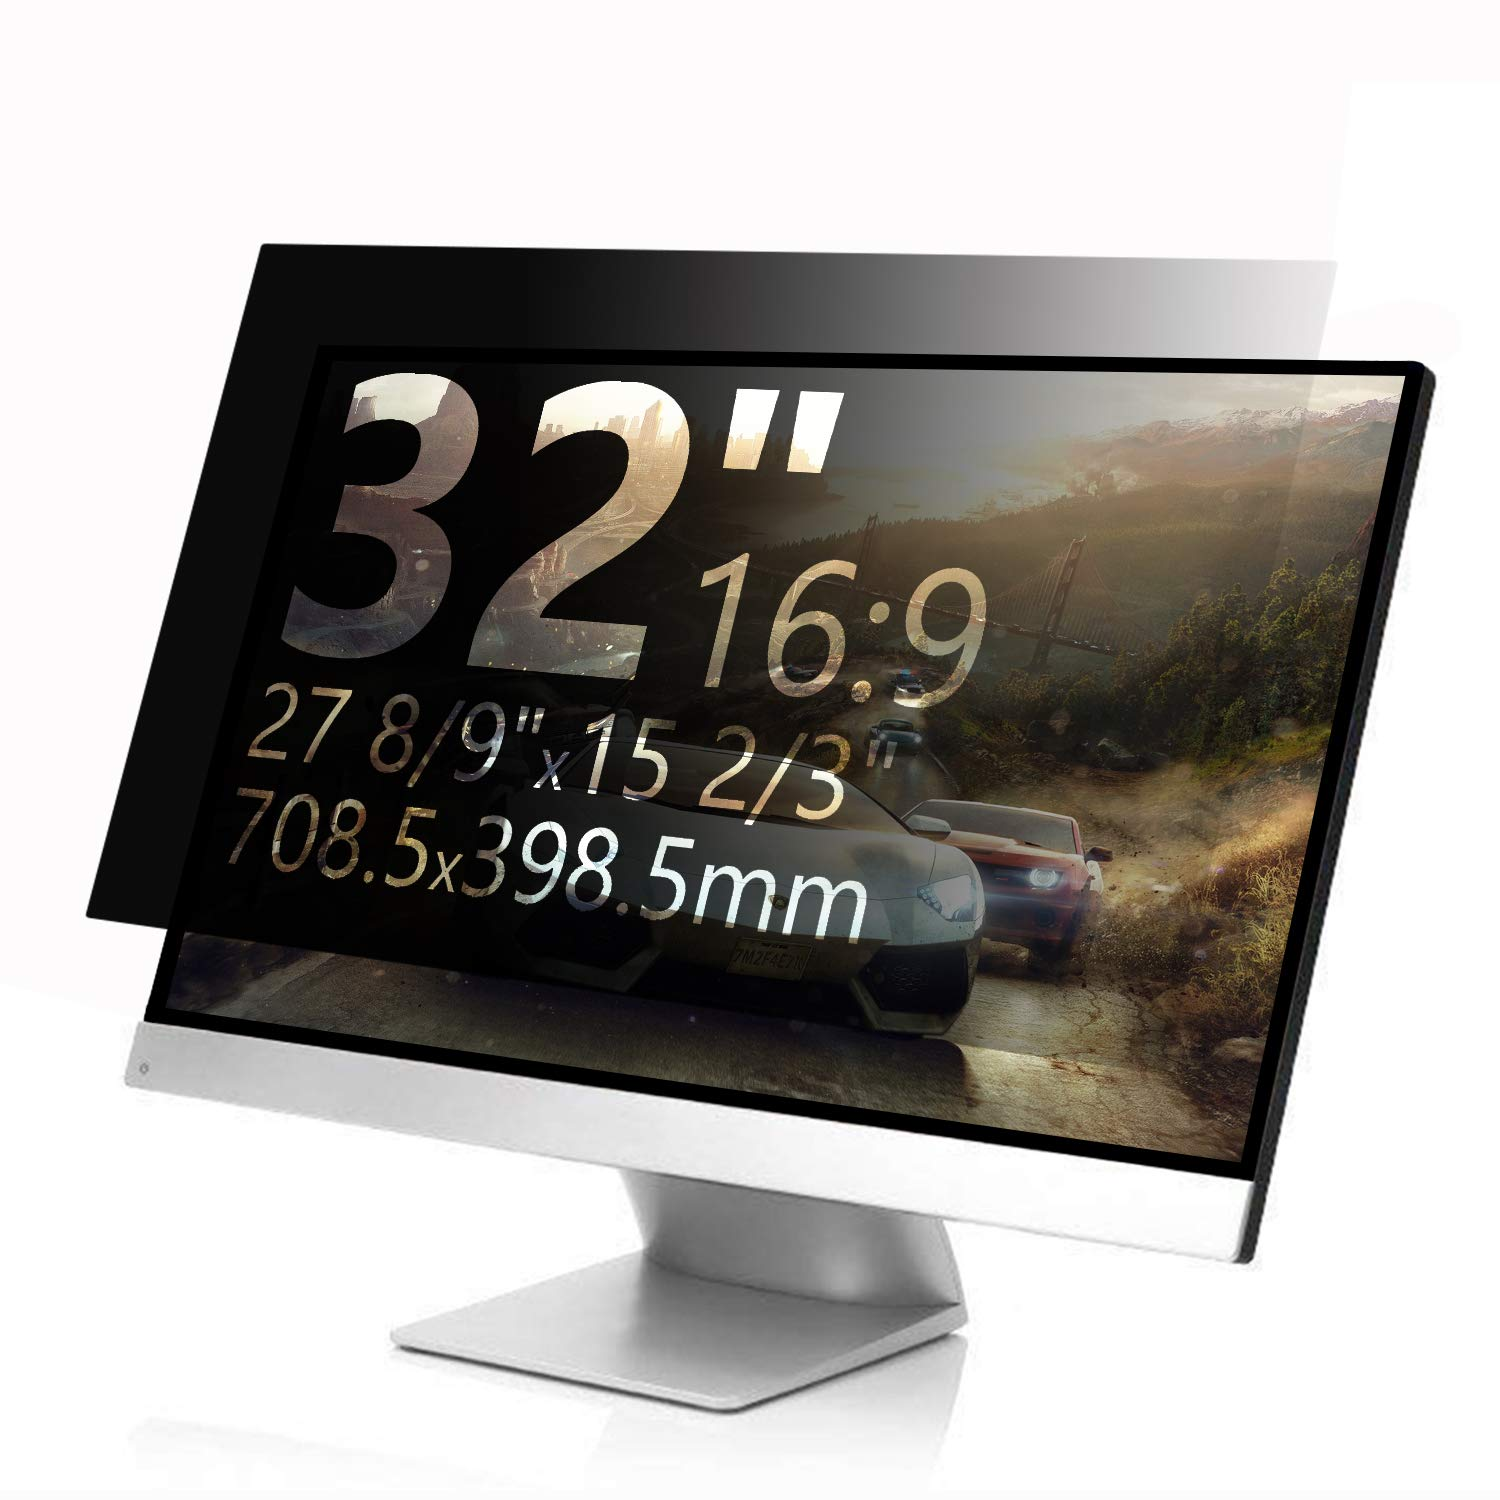 MAYAMANG Privacy Screen Protector 32 Inch 16:9 Monitor, Privacy Filter for Widescreen PC Computer, Monitor Privacy Screen 32 Inch, Anti-Glare Computer Privacy Screen, Monitor Protector by MAYAMANG